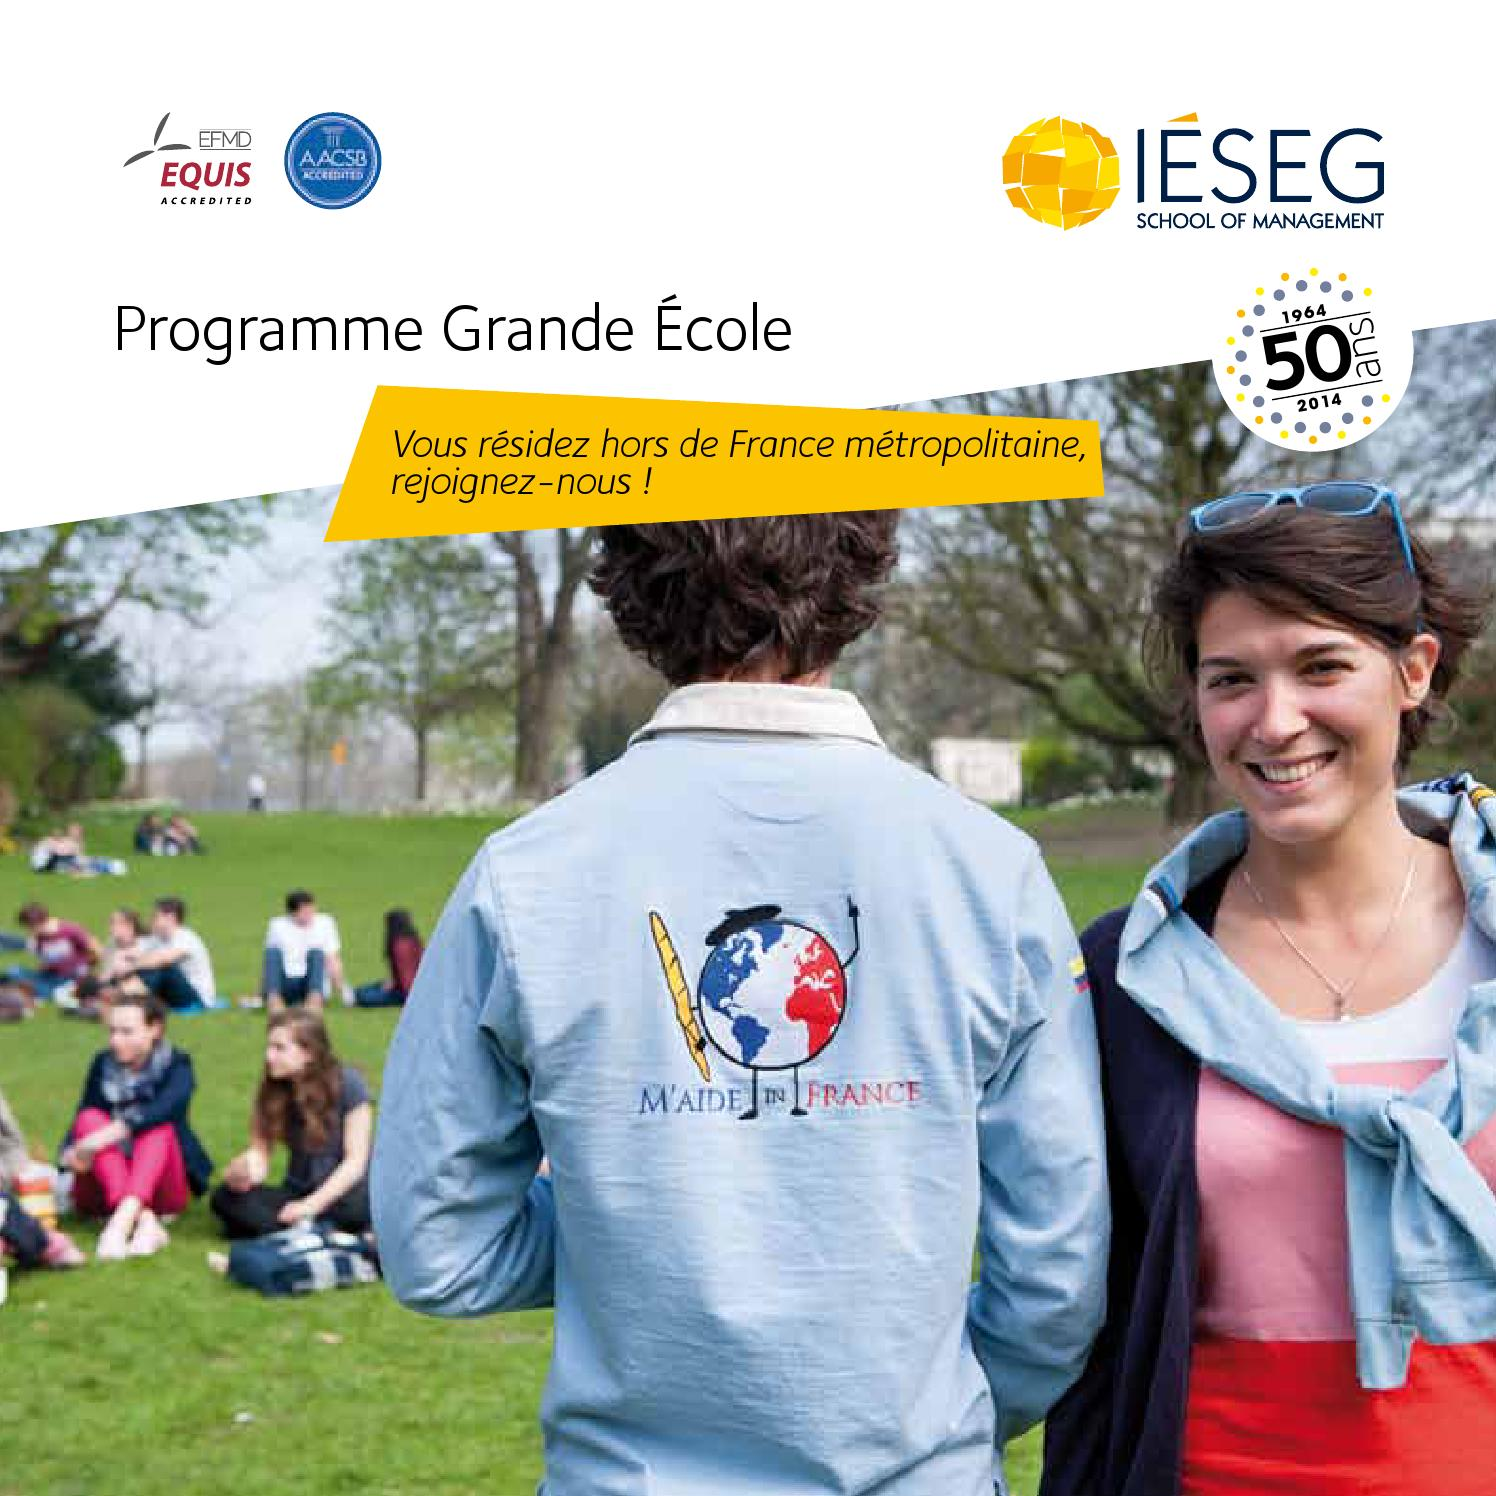 Calendrier Academique Ieseg.Admission Lycees Francais By Ieseg Issuu